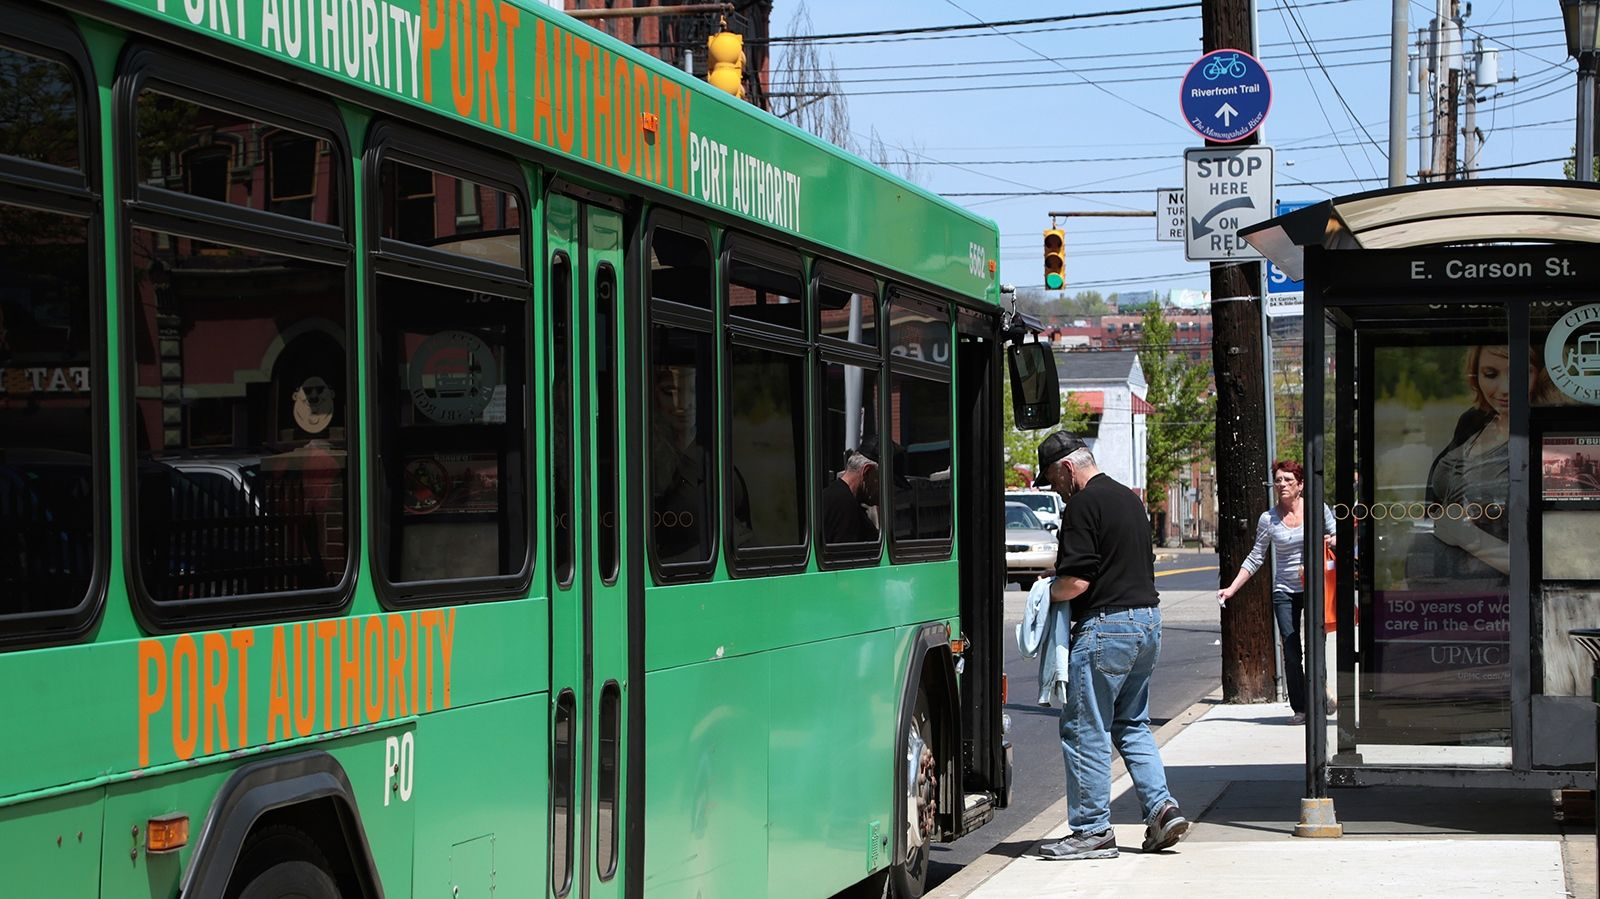 Pittsburgh transit authority is trying to make it easier to